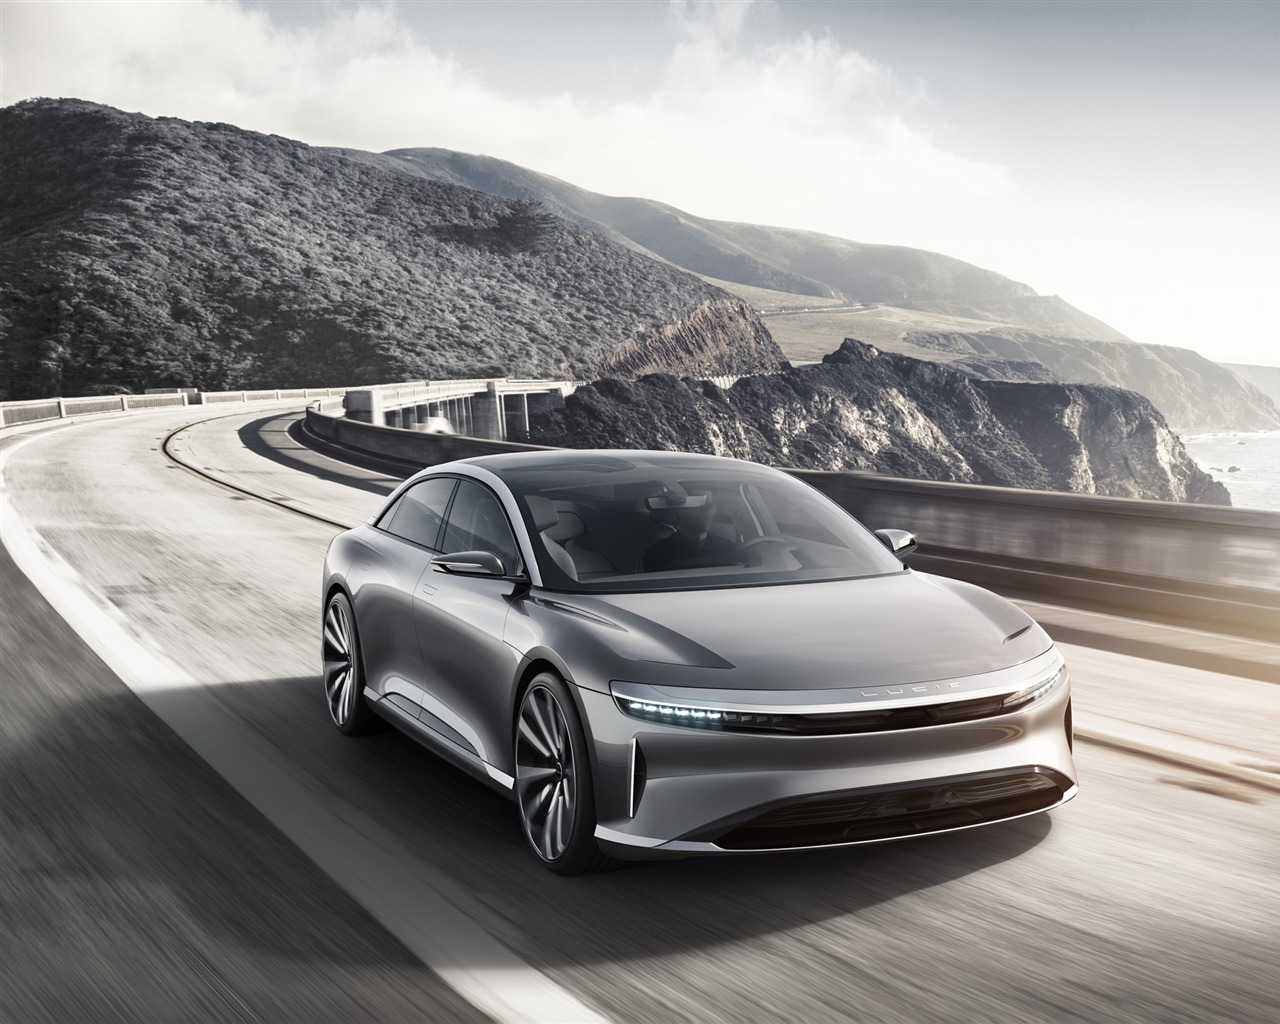 Lucid air luxury electric car-Brand Car HD Wallpaper - 1280x1024 wallpaper download